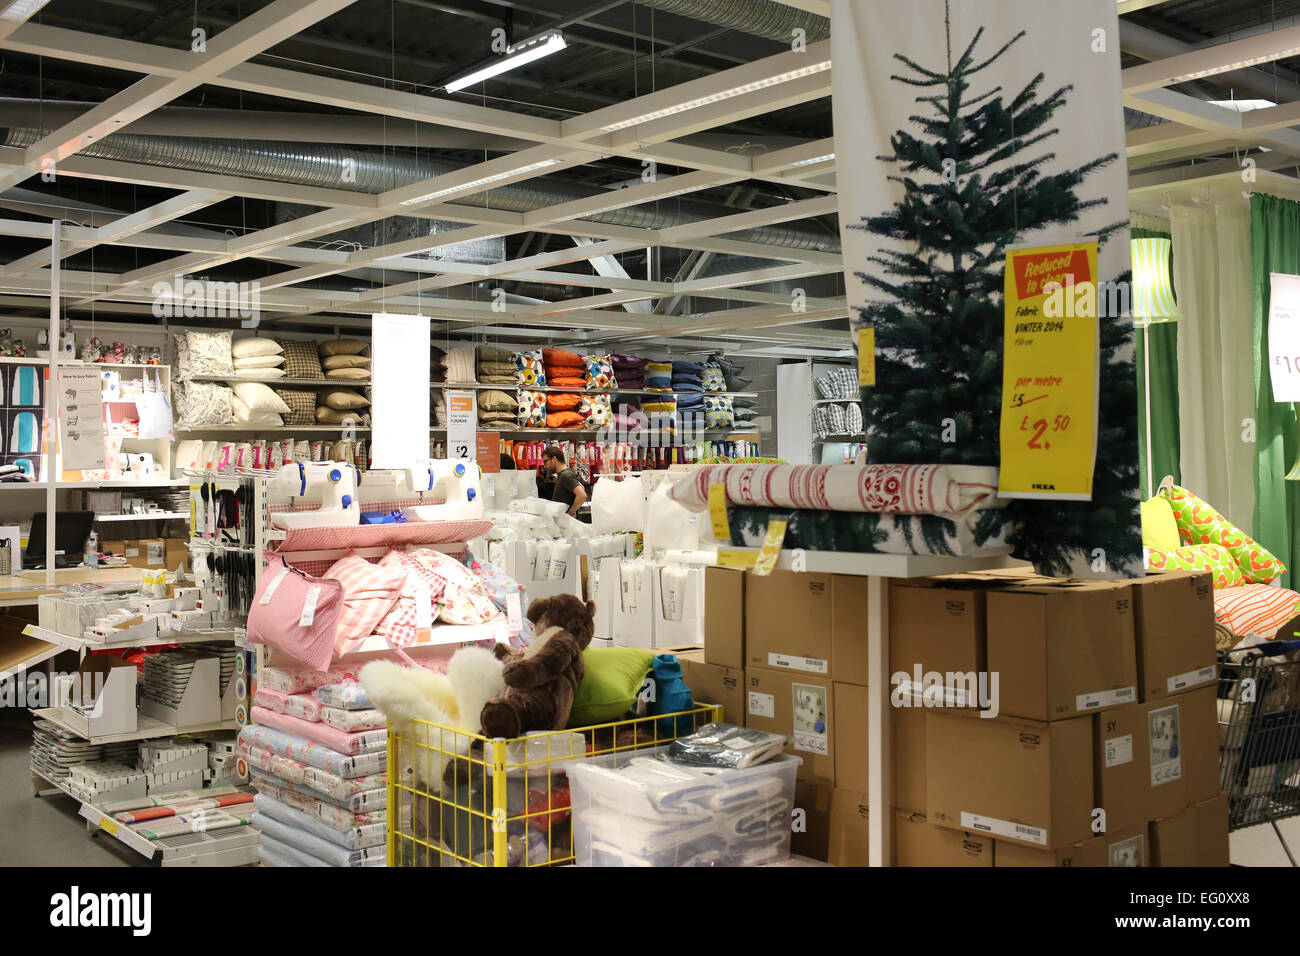 Bedding ikea store in lakeside thurrock essex england uk for Ikea store online shopping